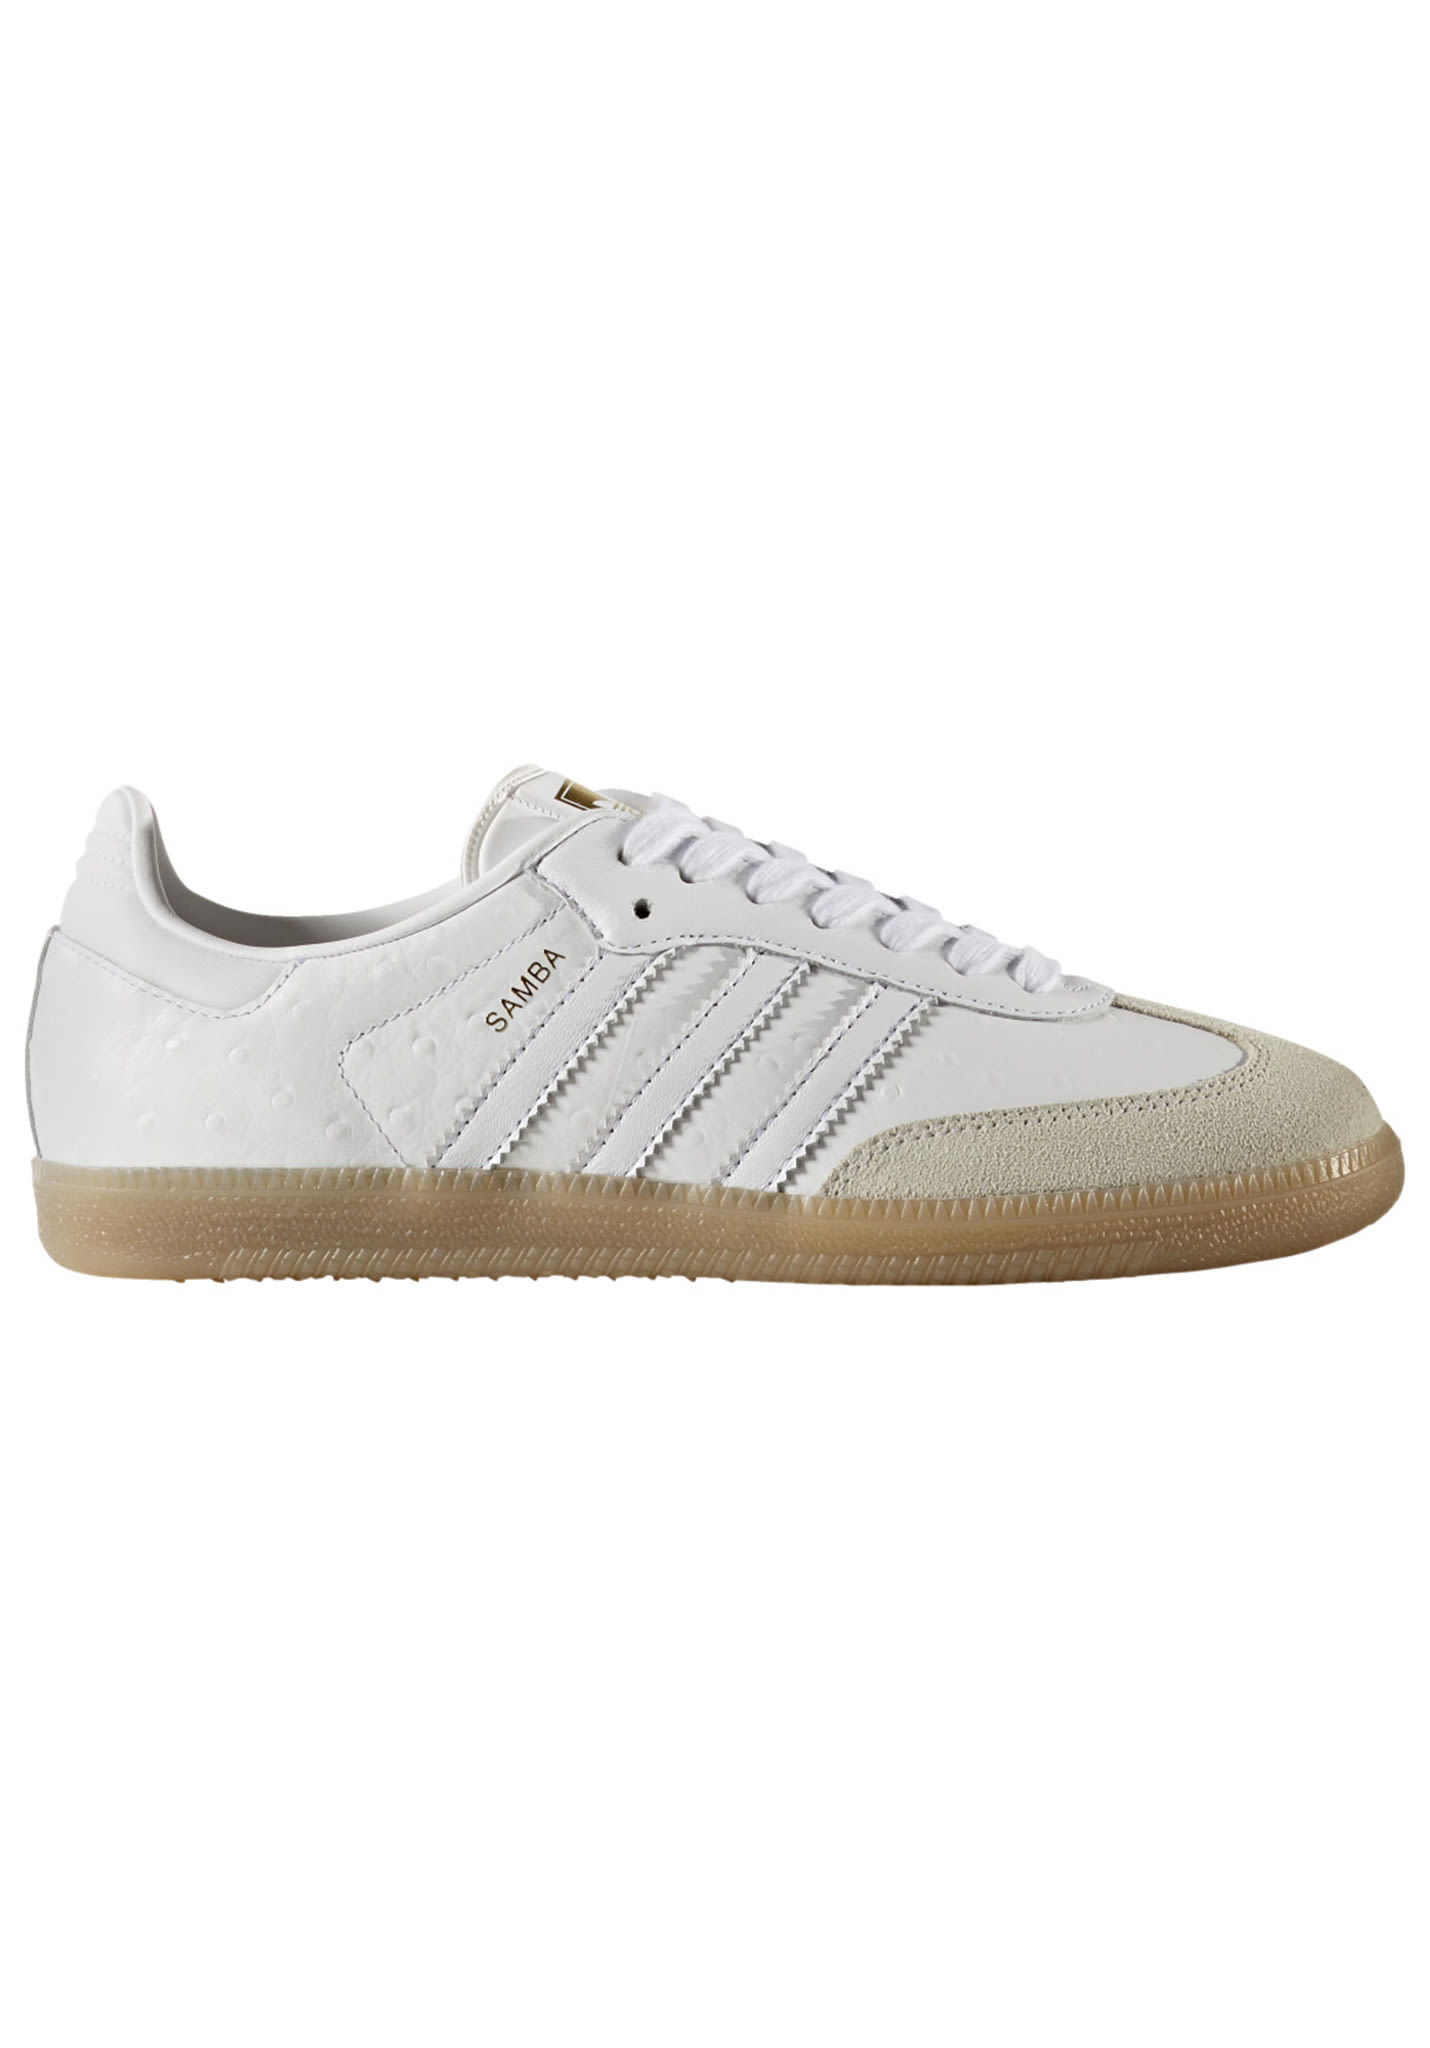 ADIDAS ORIGINALS Samba - Sneakers for Women - White - Planet Sports 72310e266